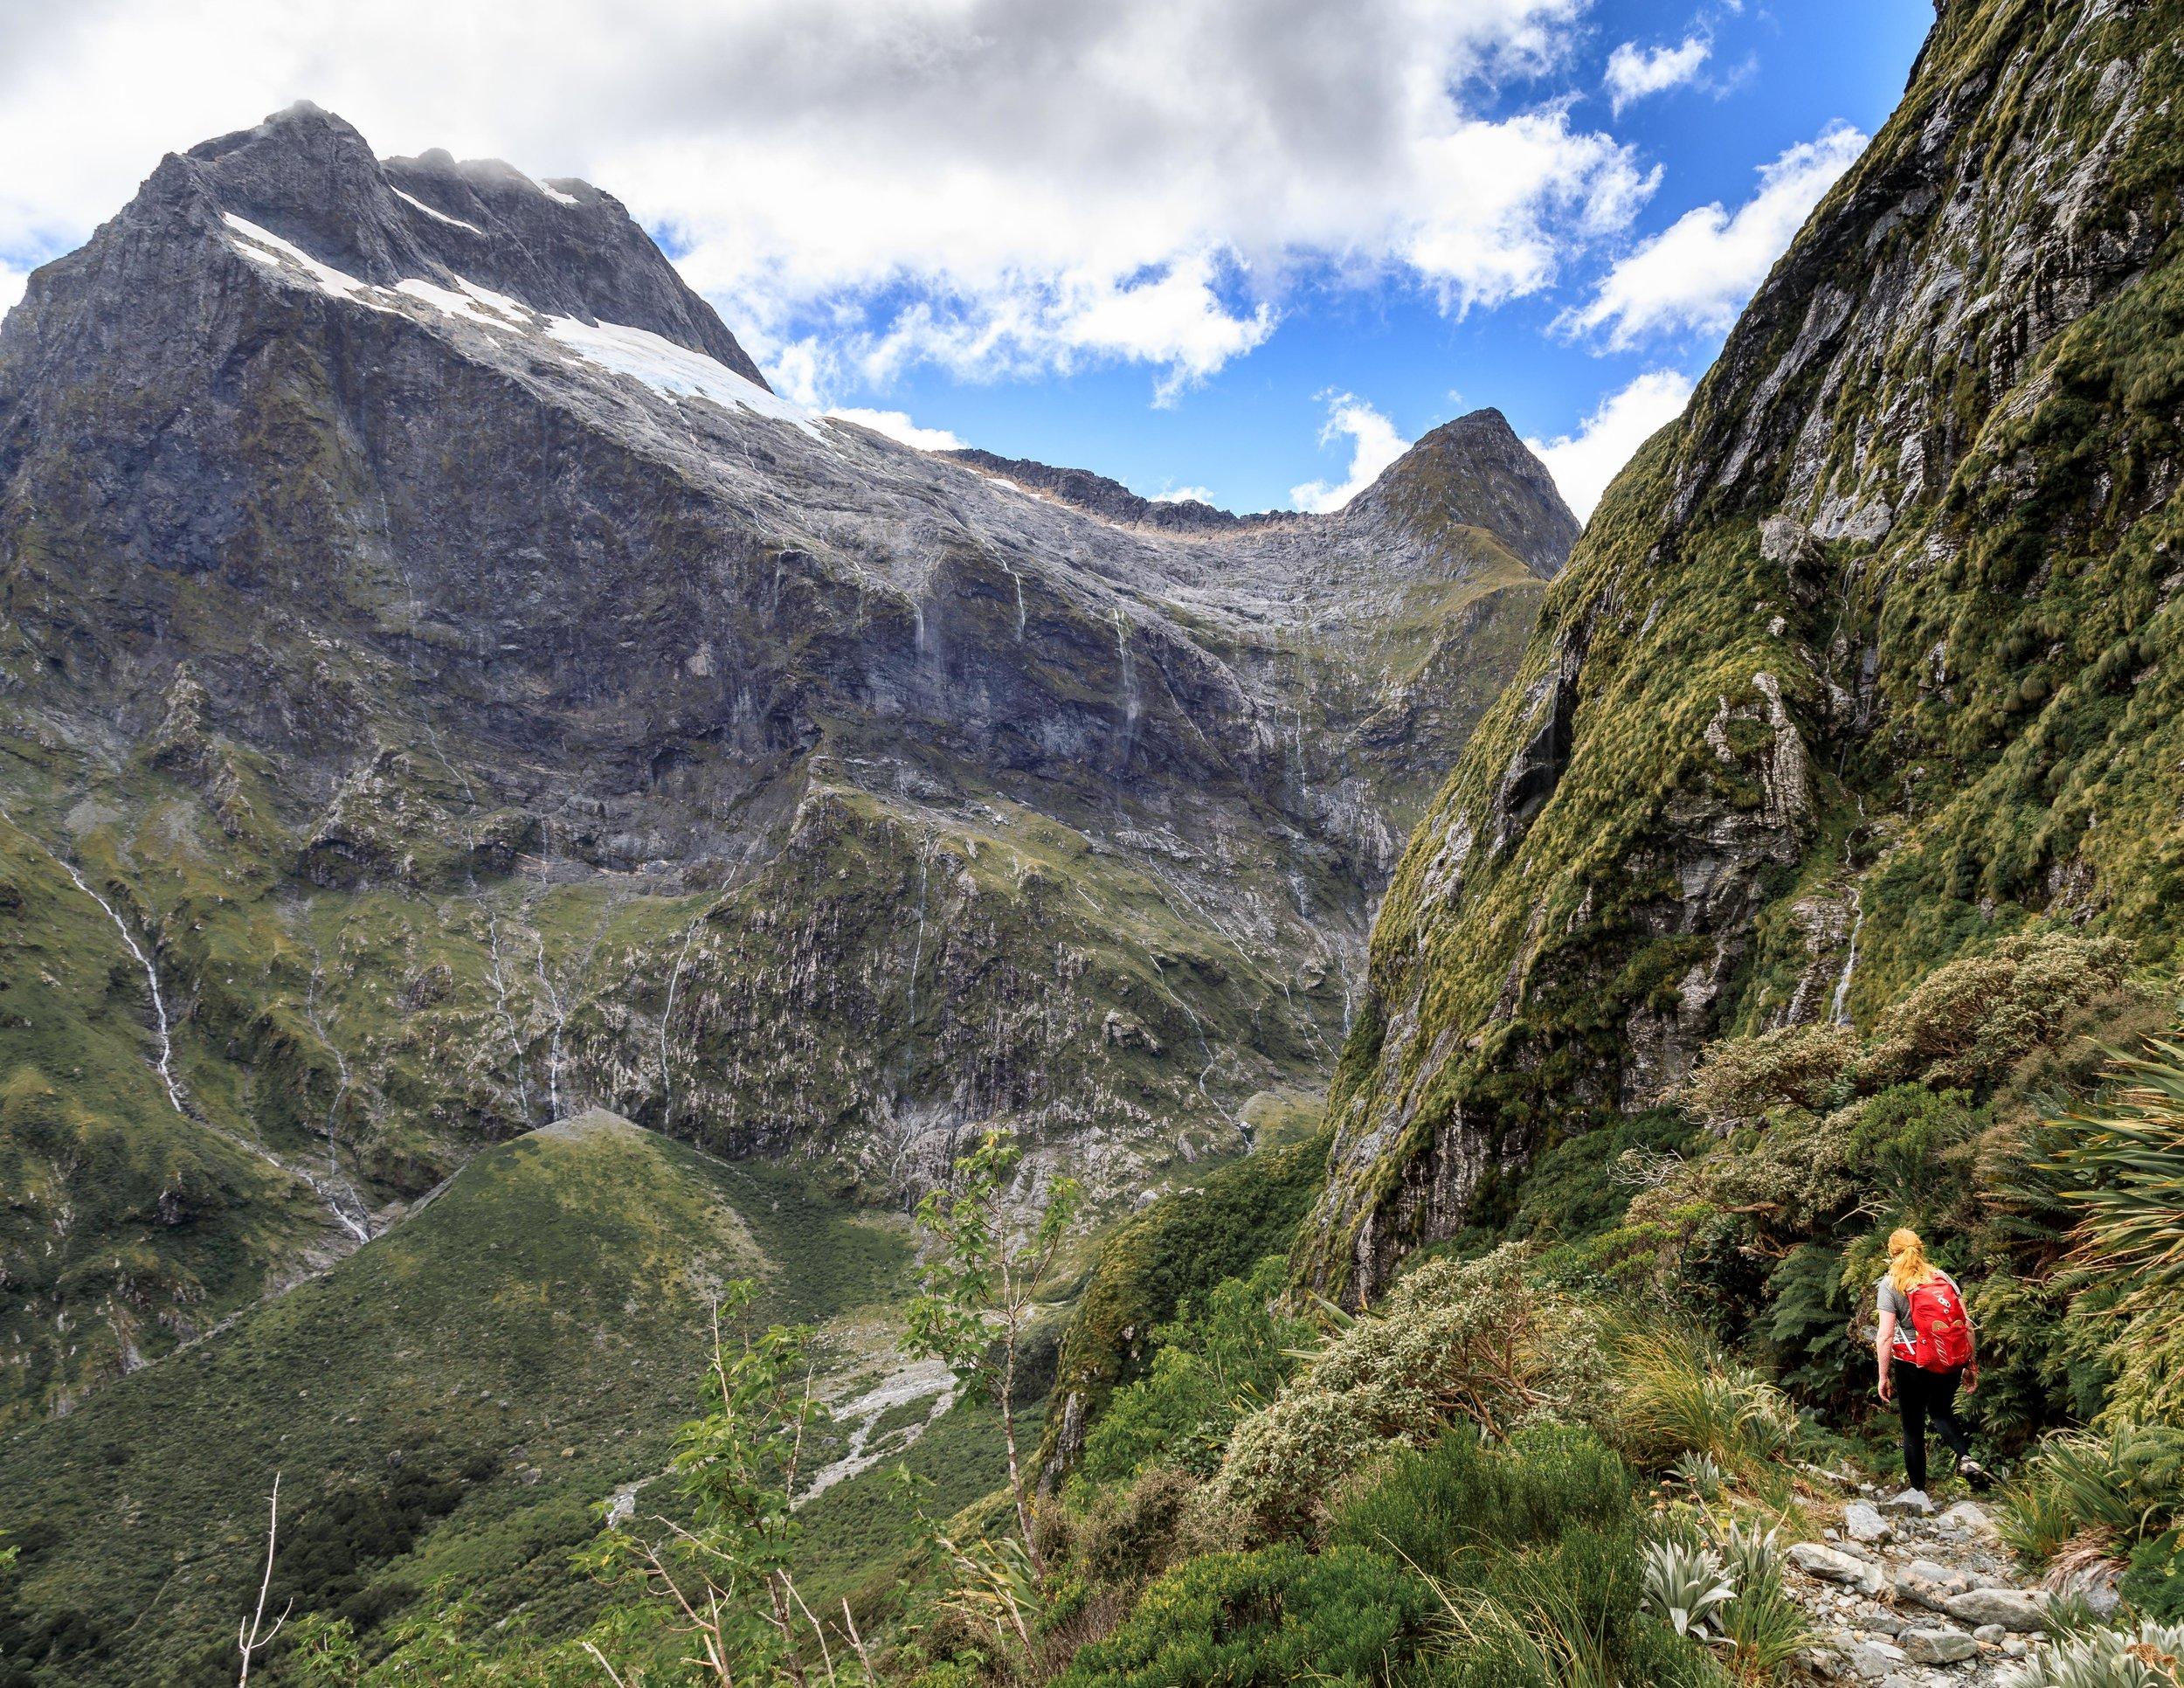 The hike down from the MacKinnon Pass, Milford Track